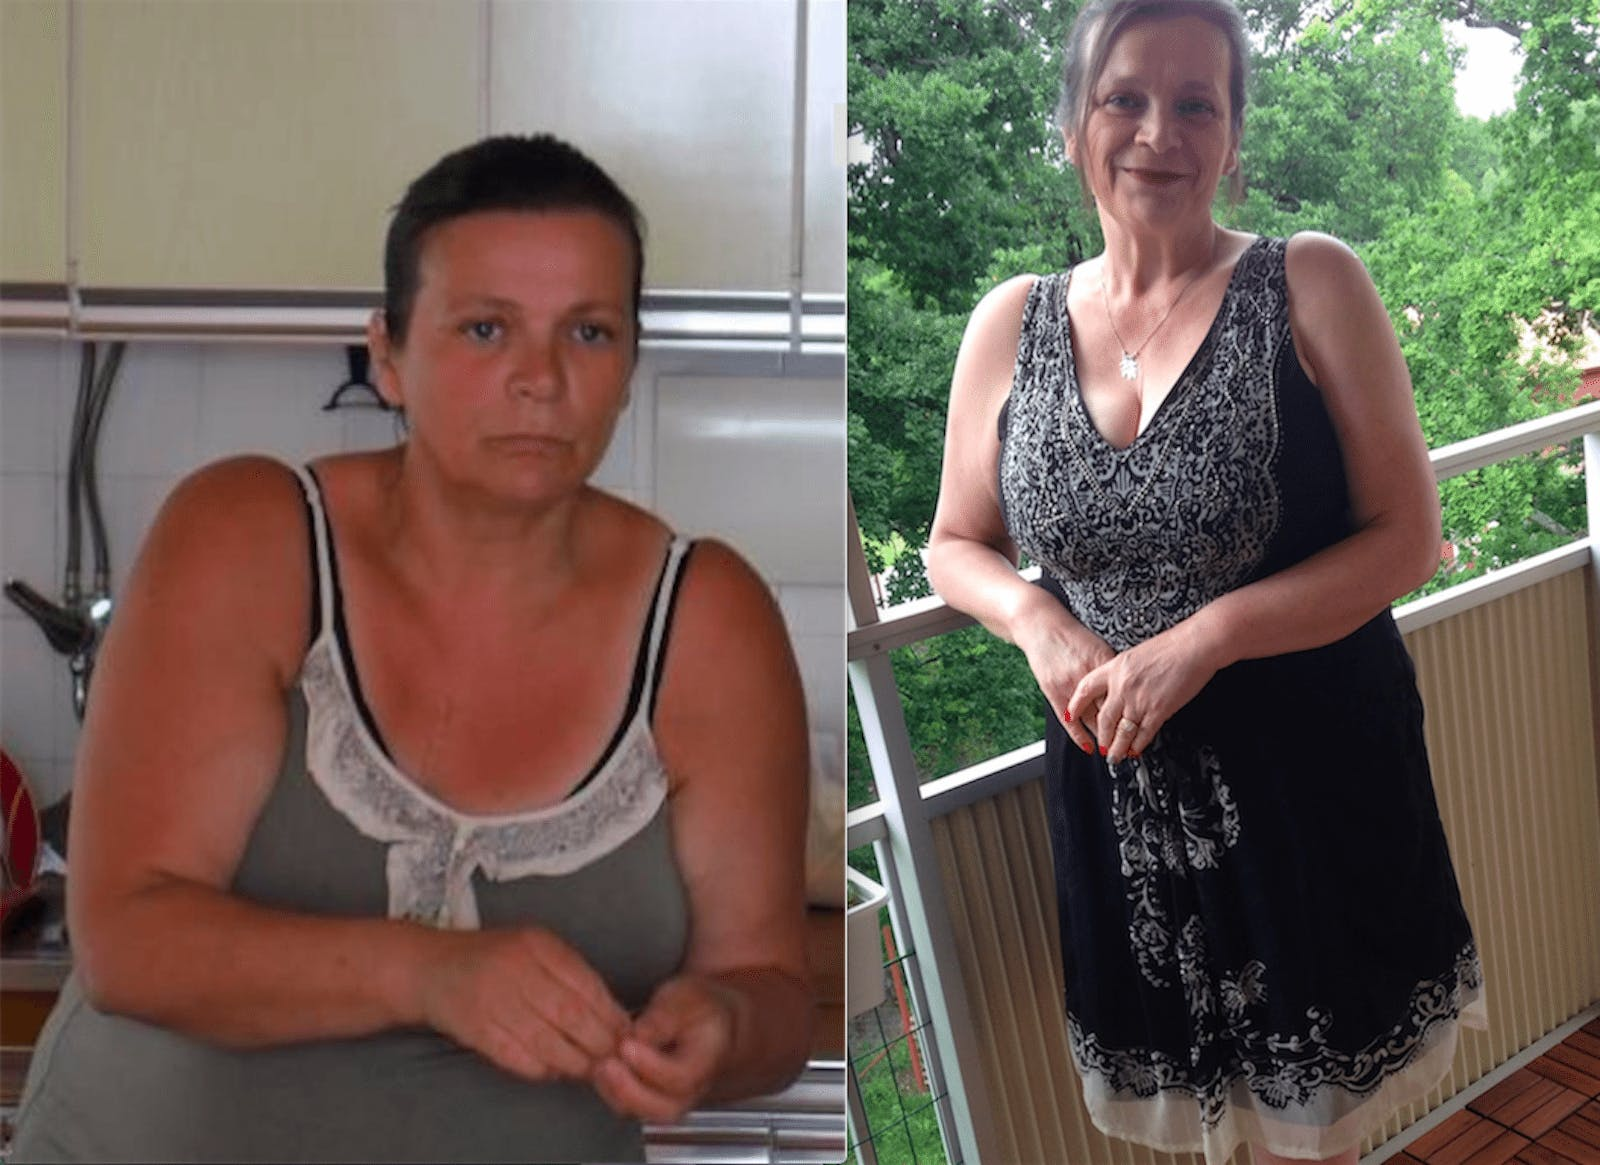 The doctor's demand was crystal clear - lose at least 35 pounds!